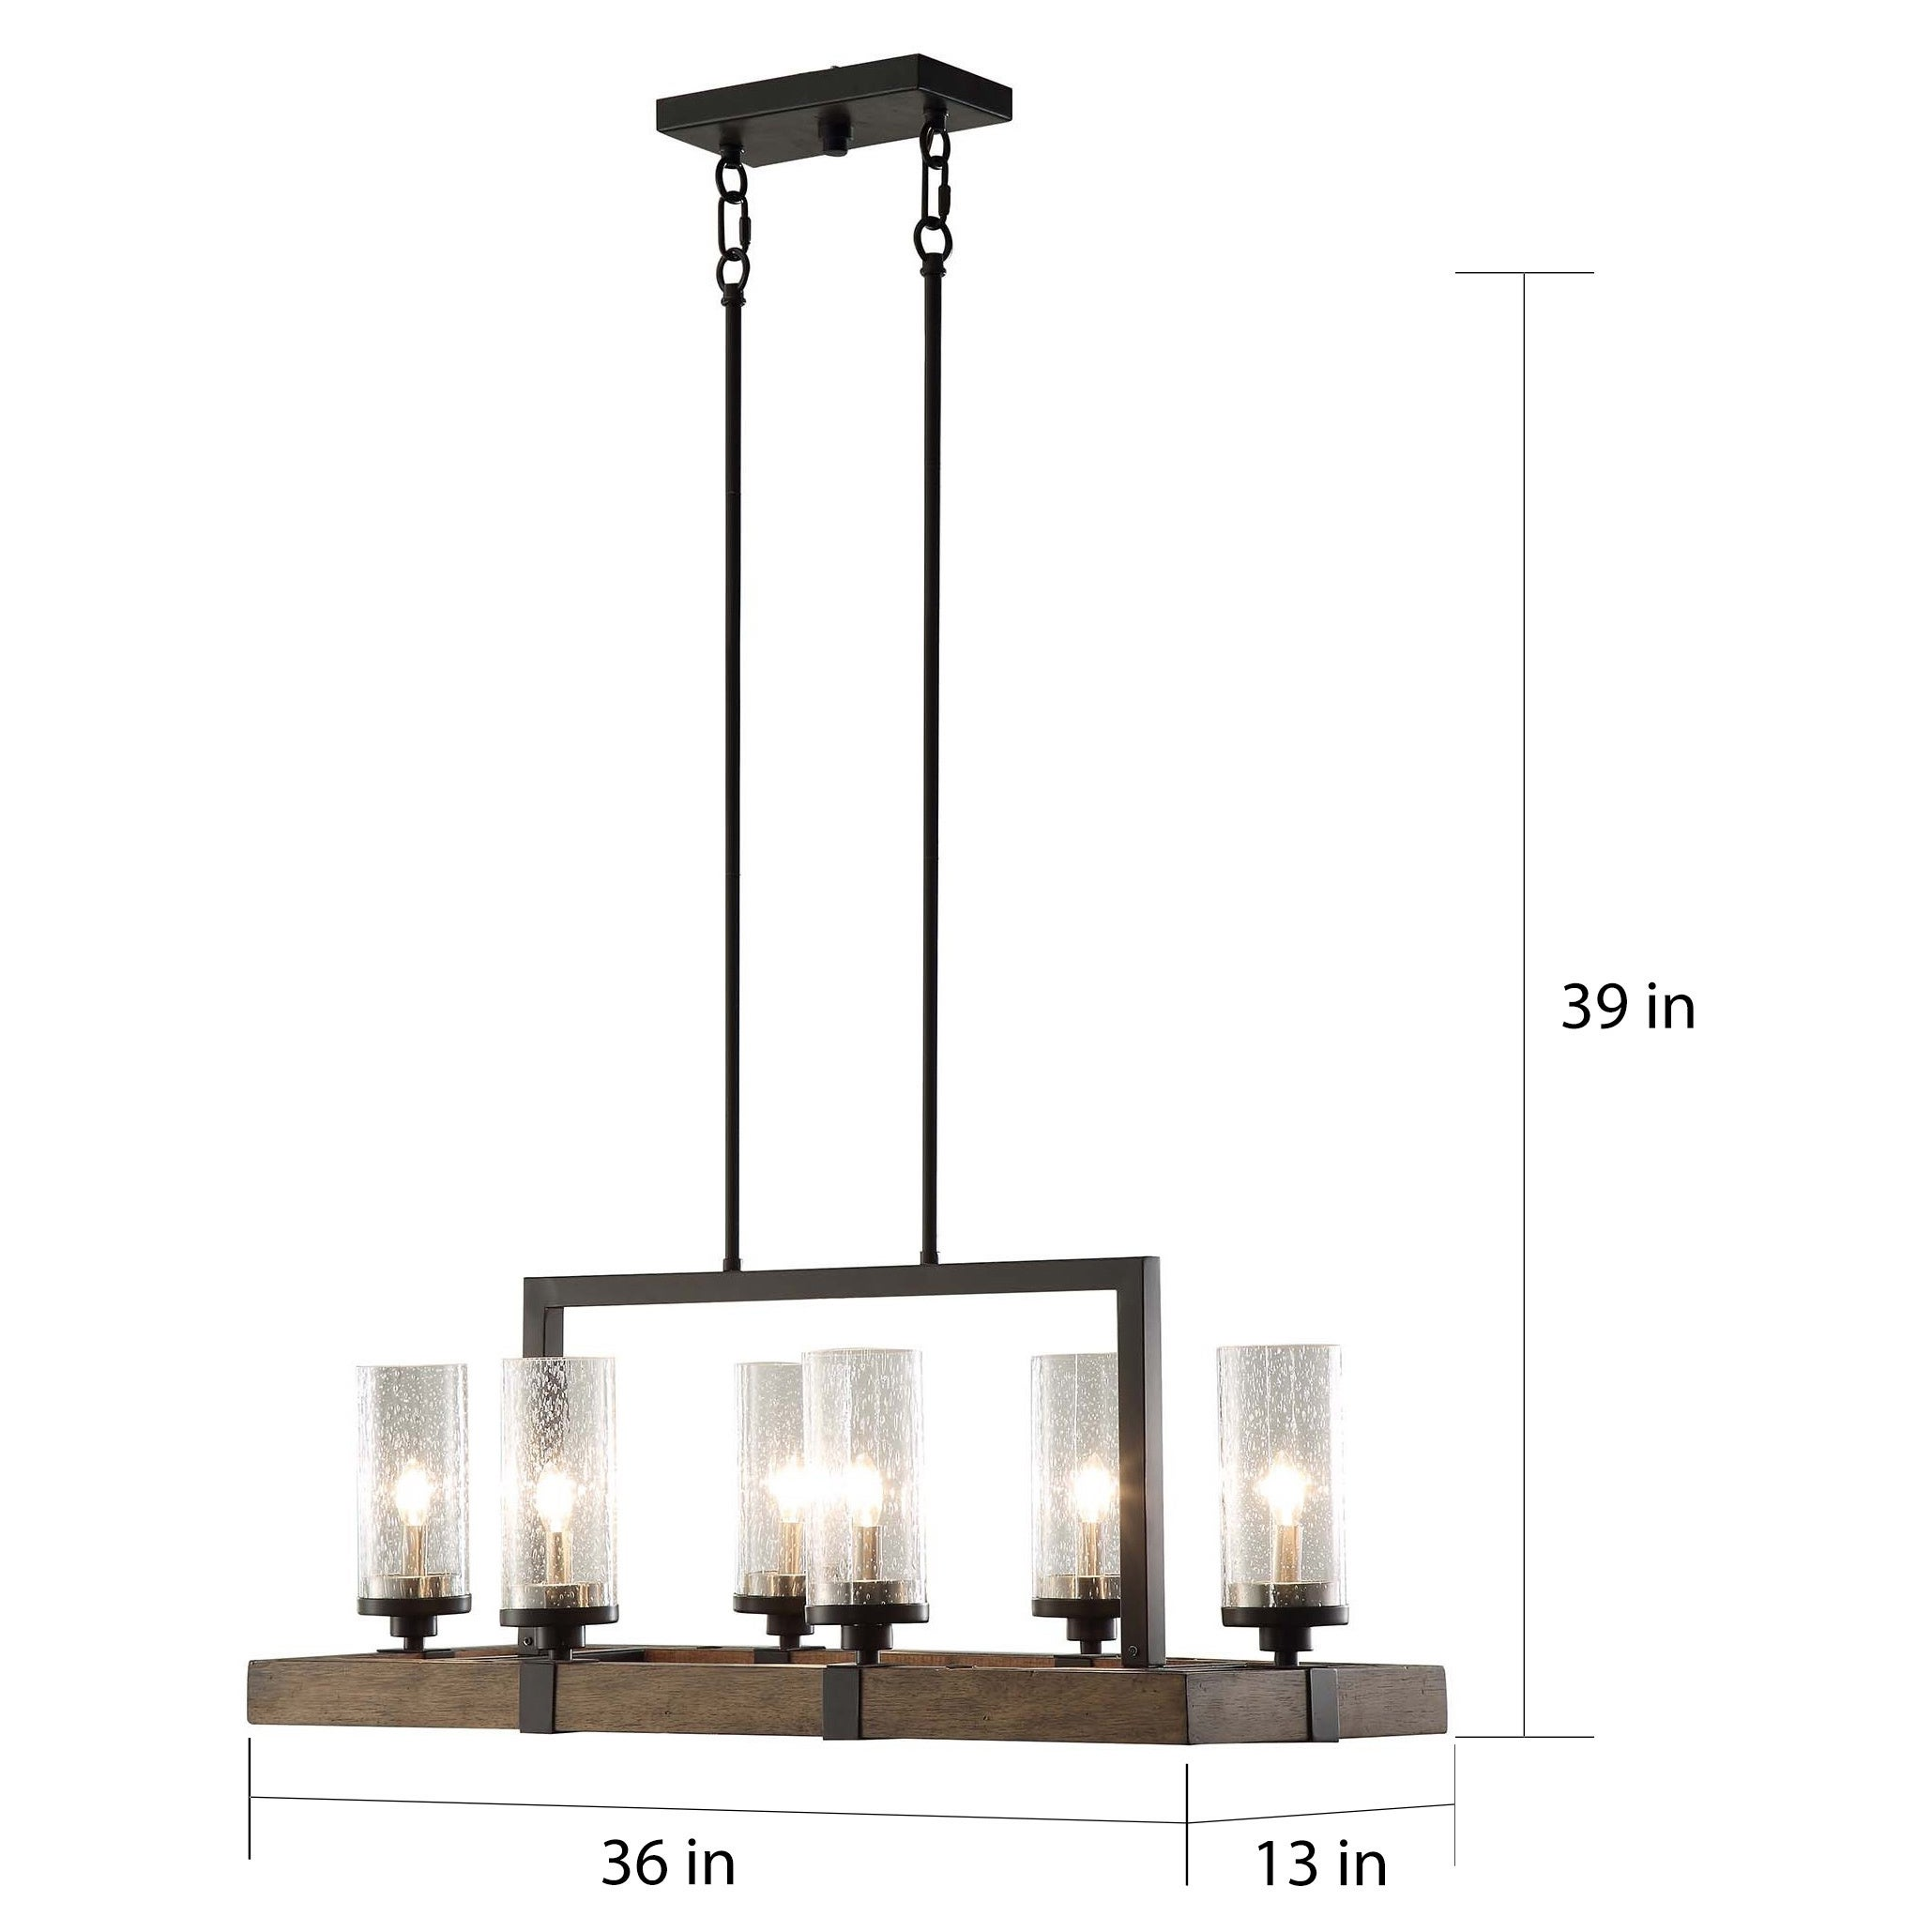 Shop The Gray Barn Vineyard Metal And Wood 6 Light Chandelier With Ceiling Lights No Wiring Related Keywords Suggestions Seeded Glass Shades Free Shipping Today 10379621